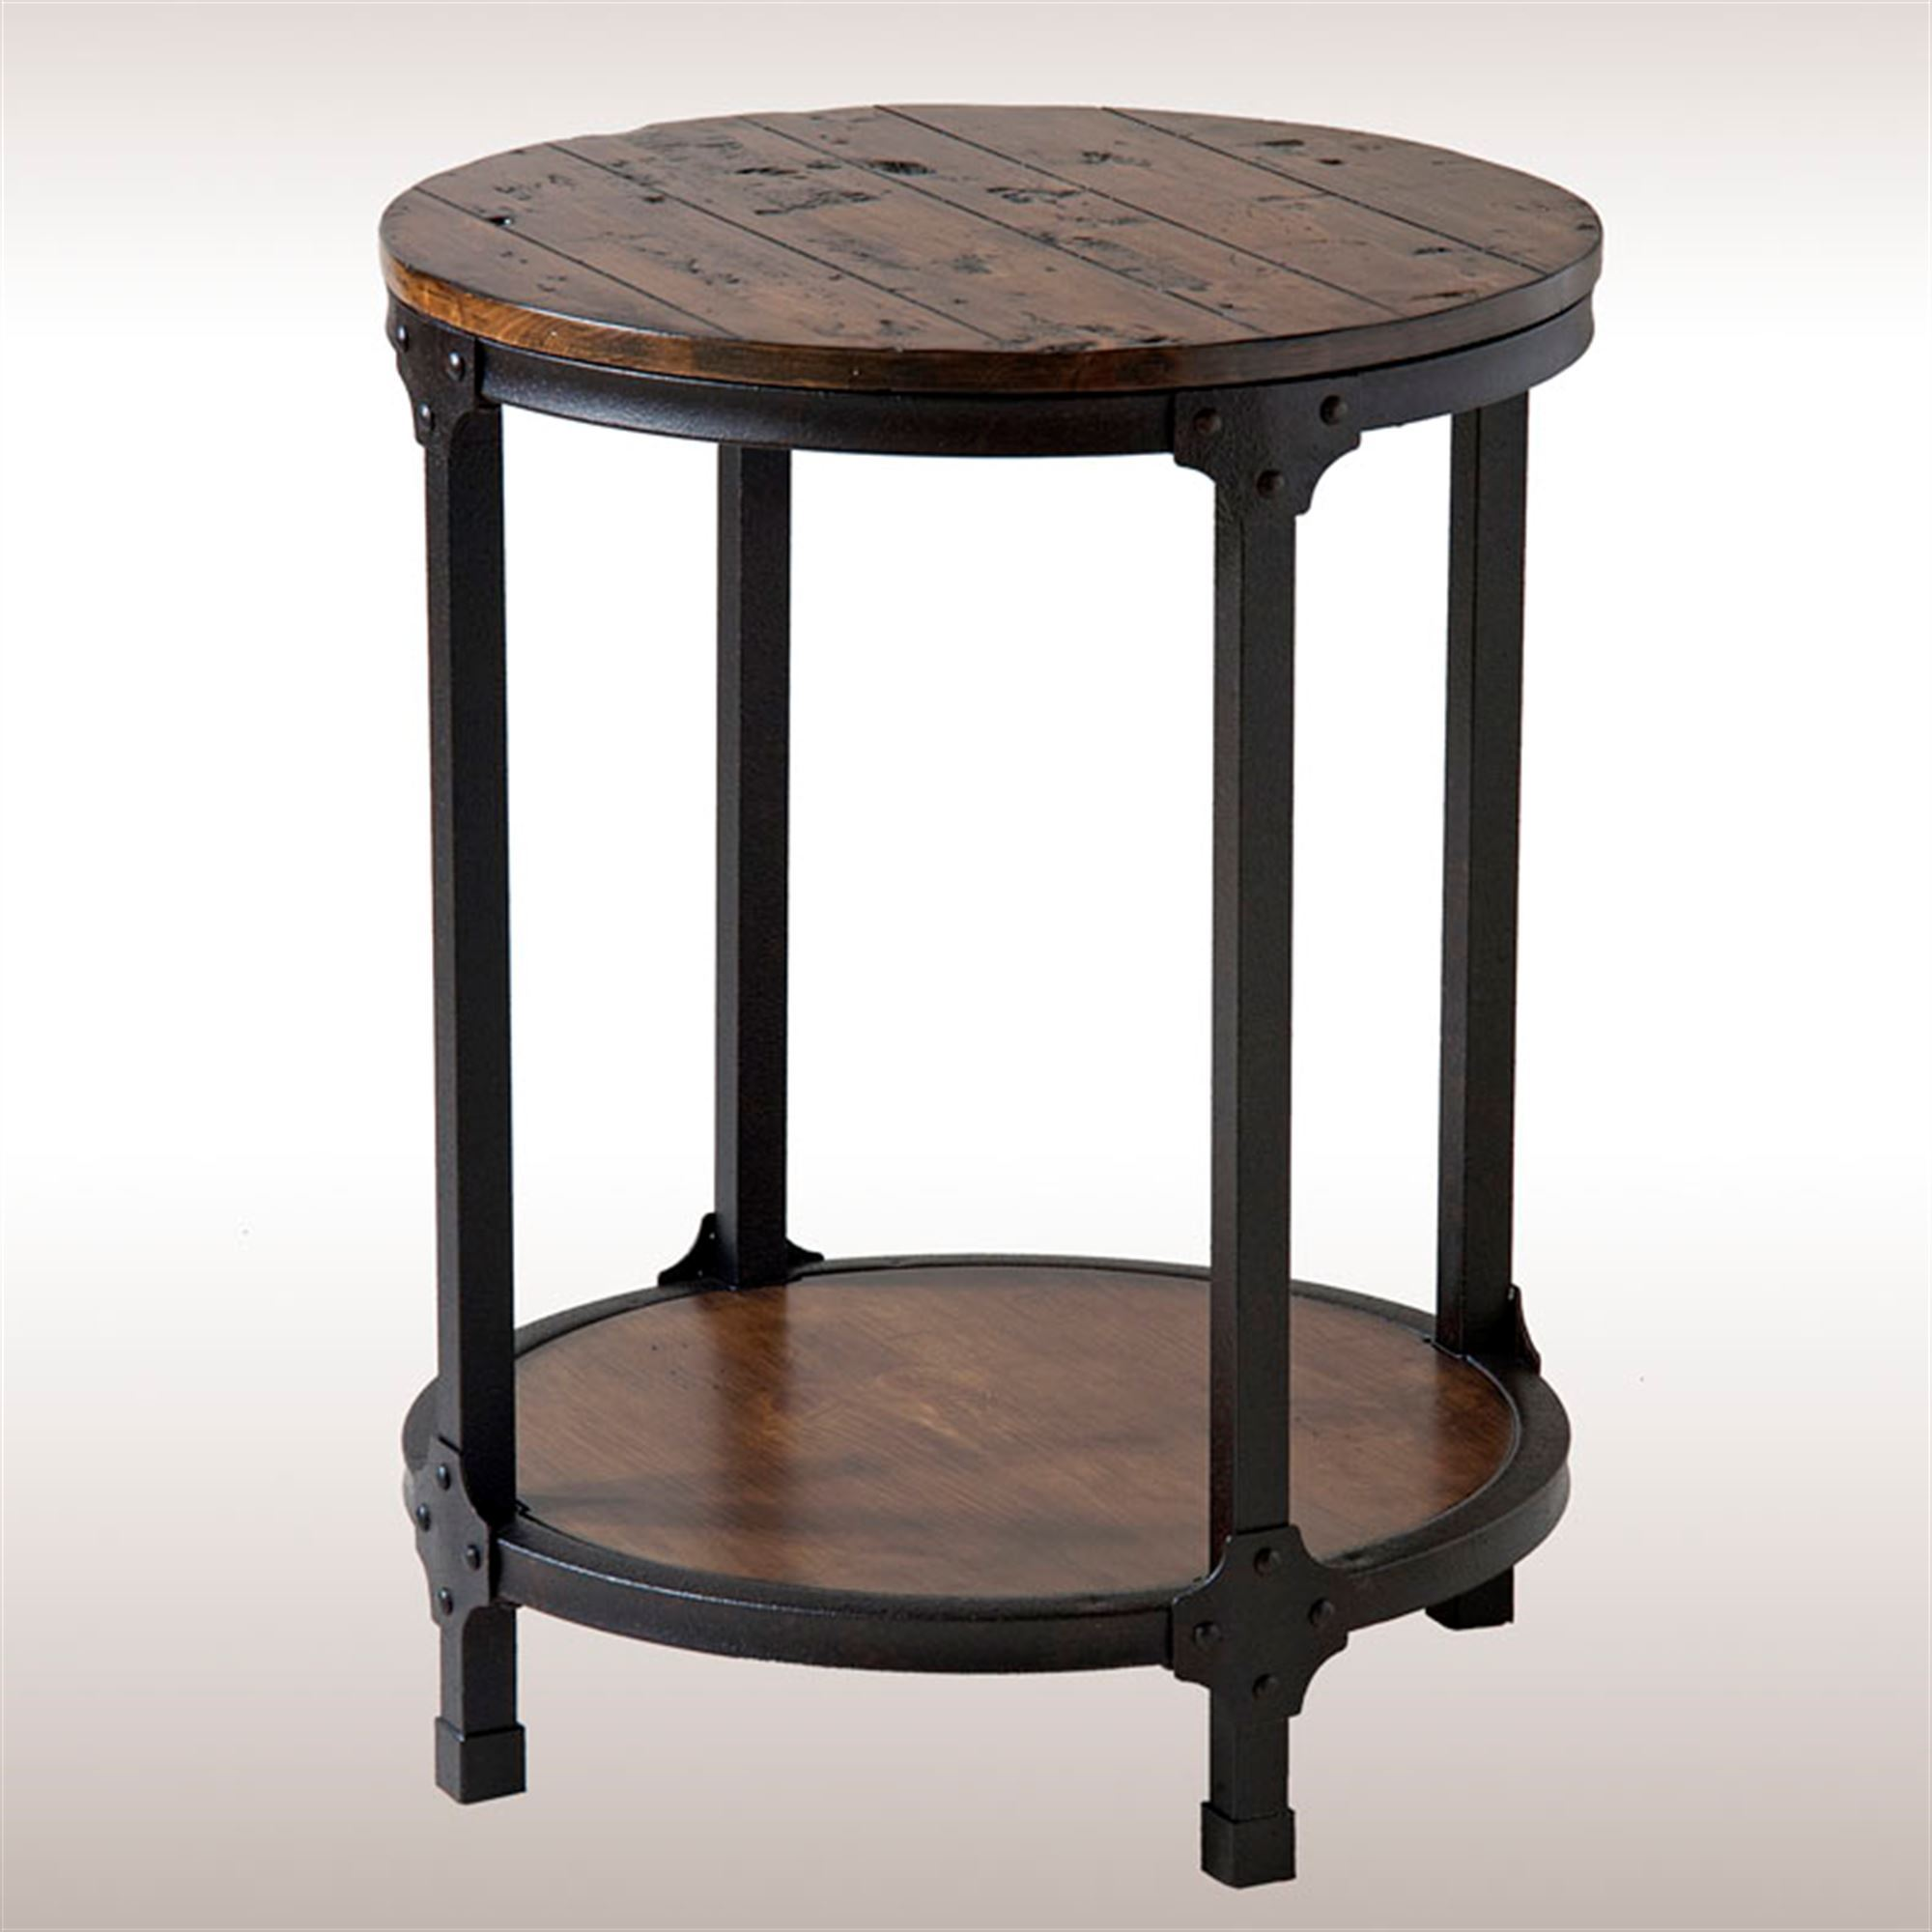 round black kitchen table decor rustic accent cottage large gold and marble end dining room centerpiece ideas currey company unique outdoor furniture center design for living cast